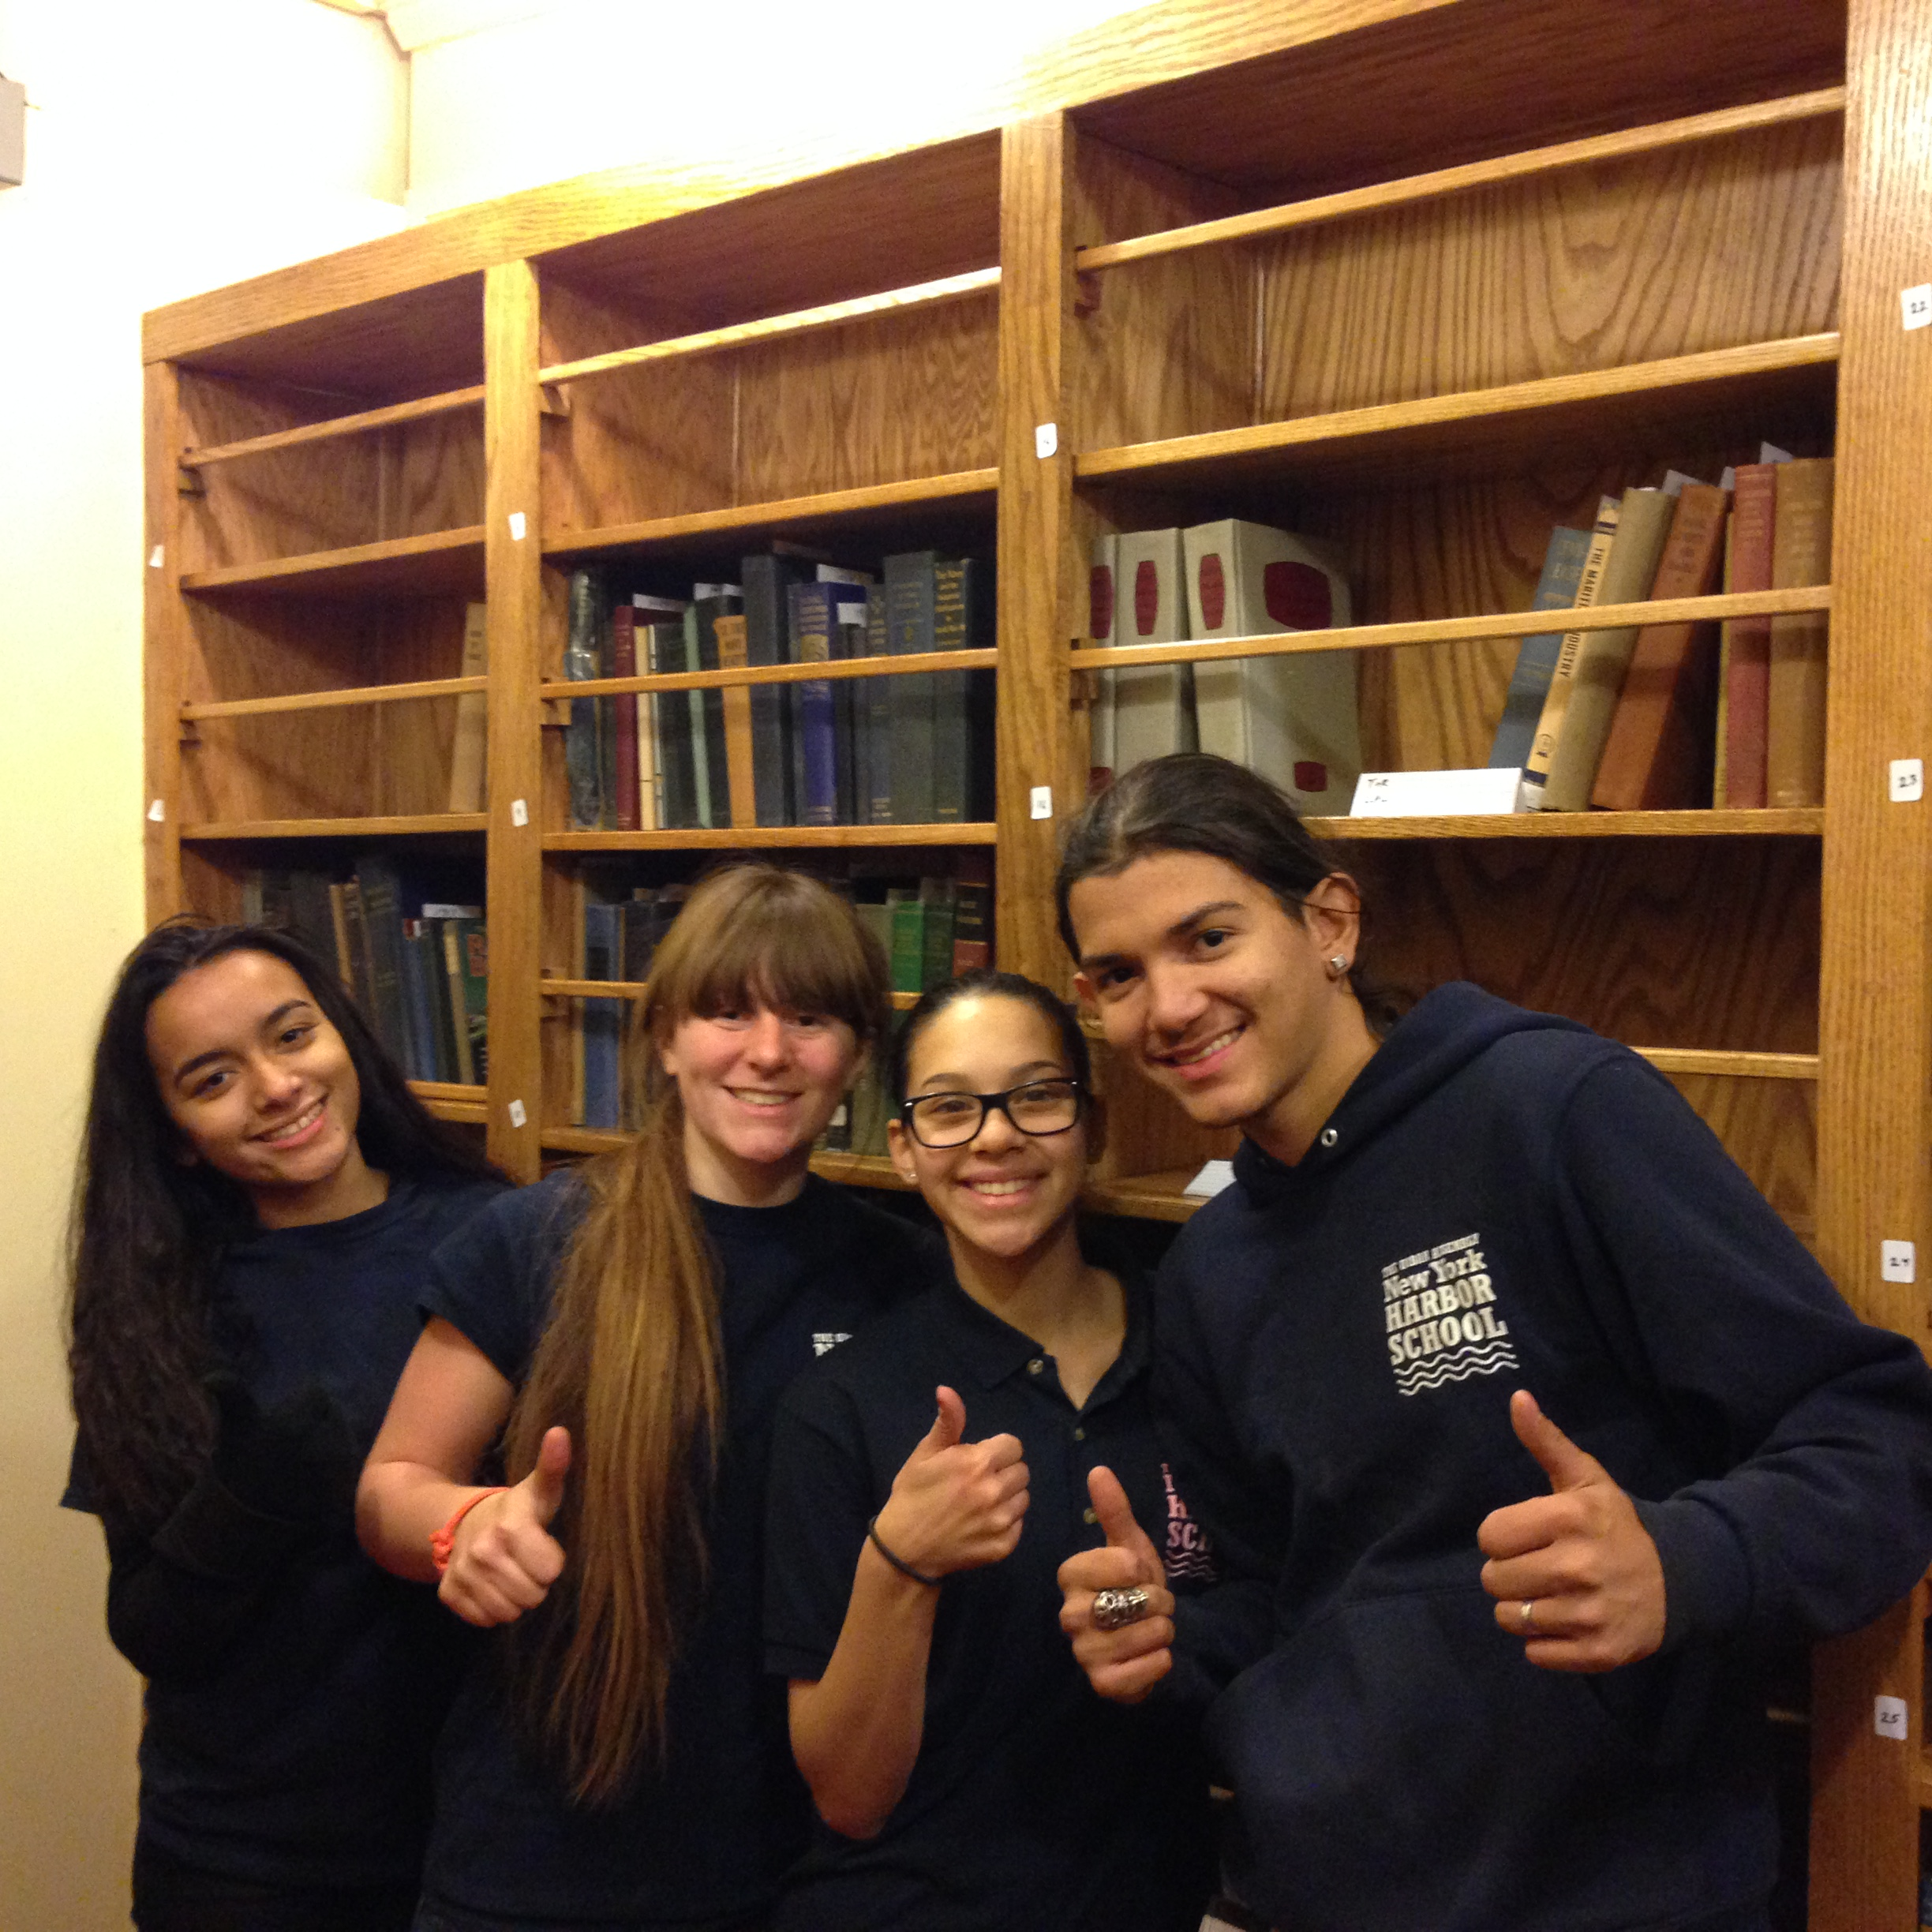 Students pose for a shot in the library after unloading dozens of boxes of books and old uniforms from the library annex. They also got to enjoy the opportunity to look through historical items in the annex, including a complete collection of LIFE magazines from as far back as 1938, training manuals and history books from the 1940's, and even a complete set of flash cards from the BROWN's School Ship years.  Photographs and wartime propaganda posters were a big hit, allowing the students to see how marketing has changed over the last eight decades, and get a glimpse of what life was like before and during the war years.